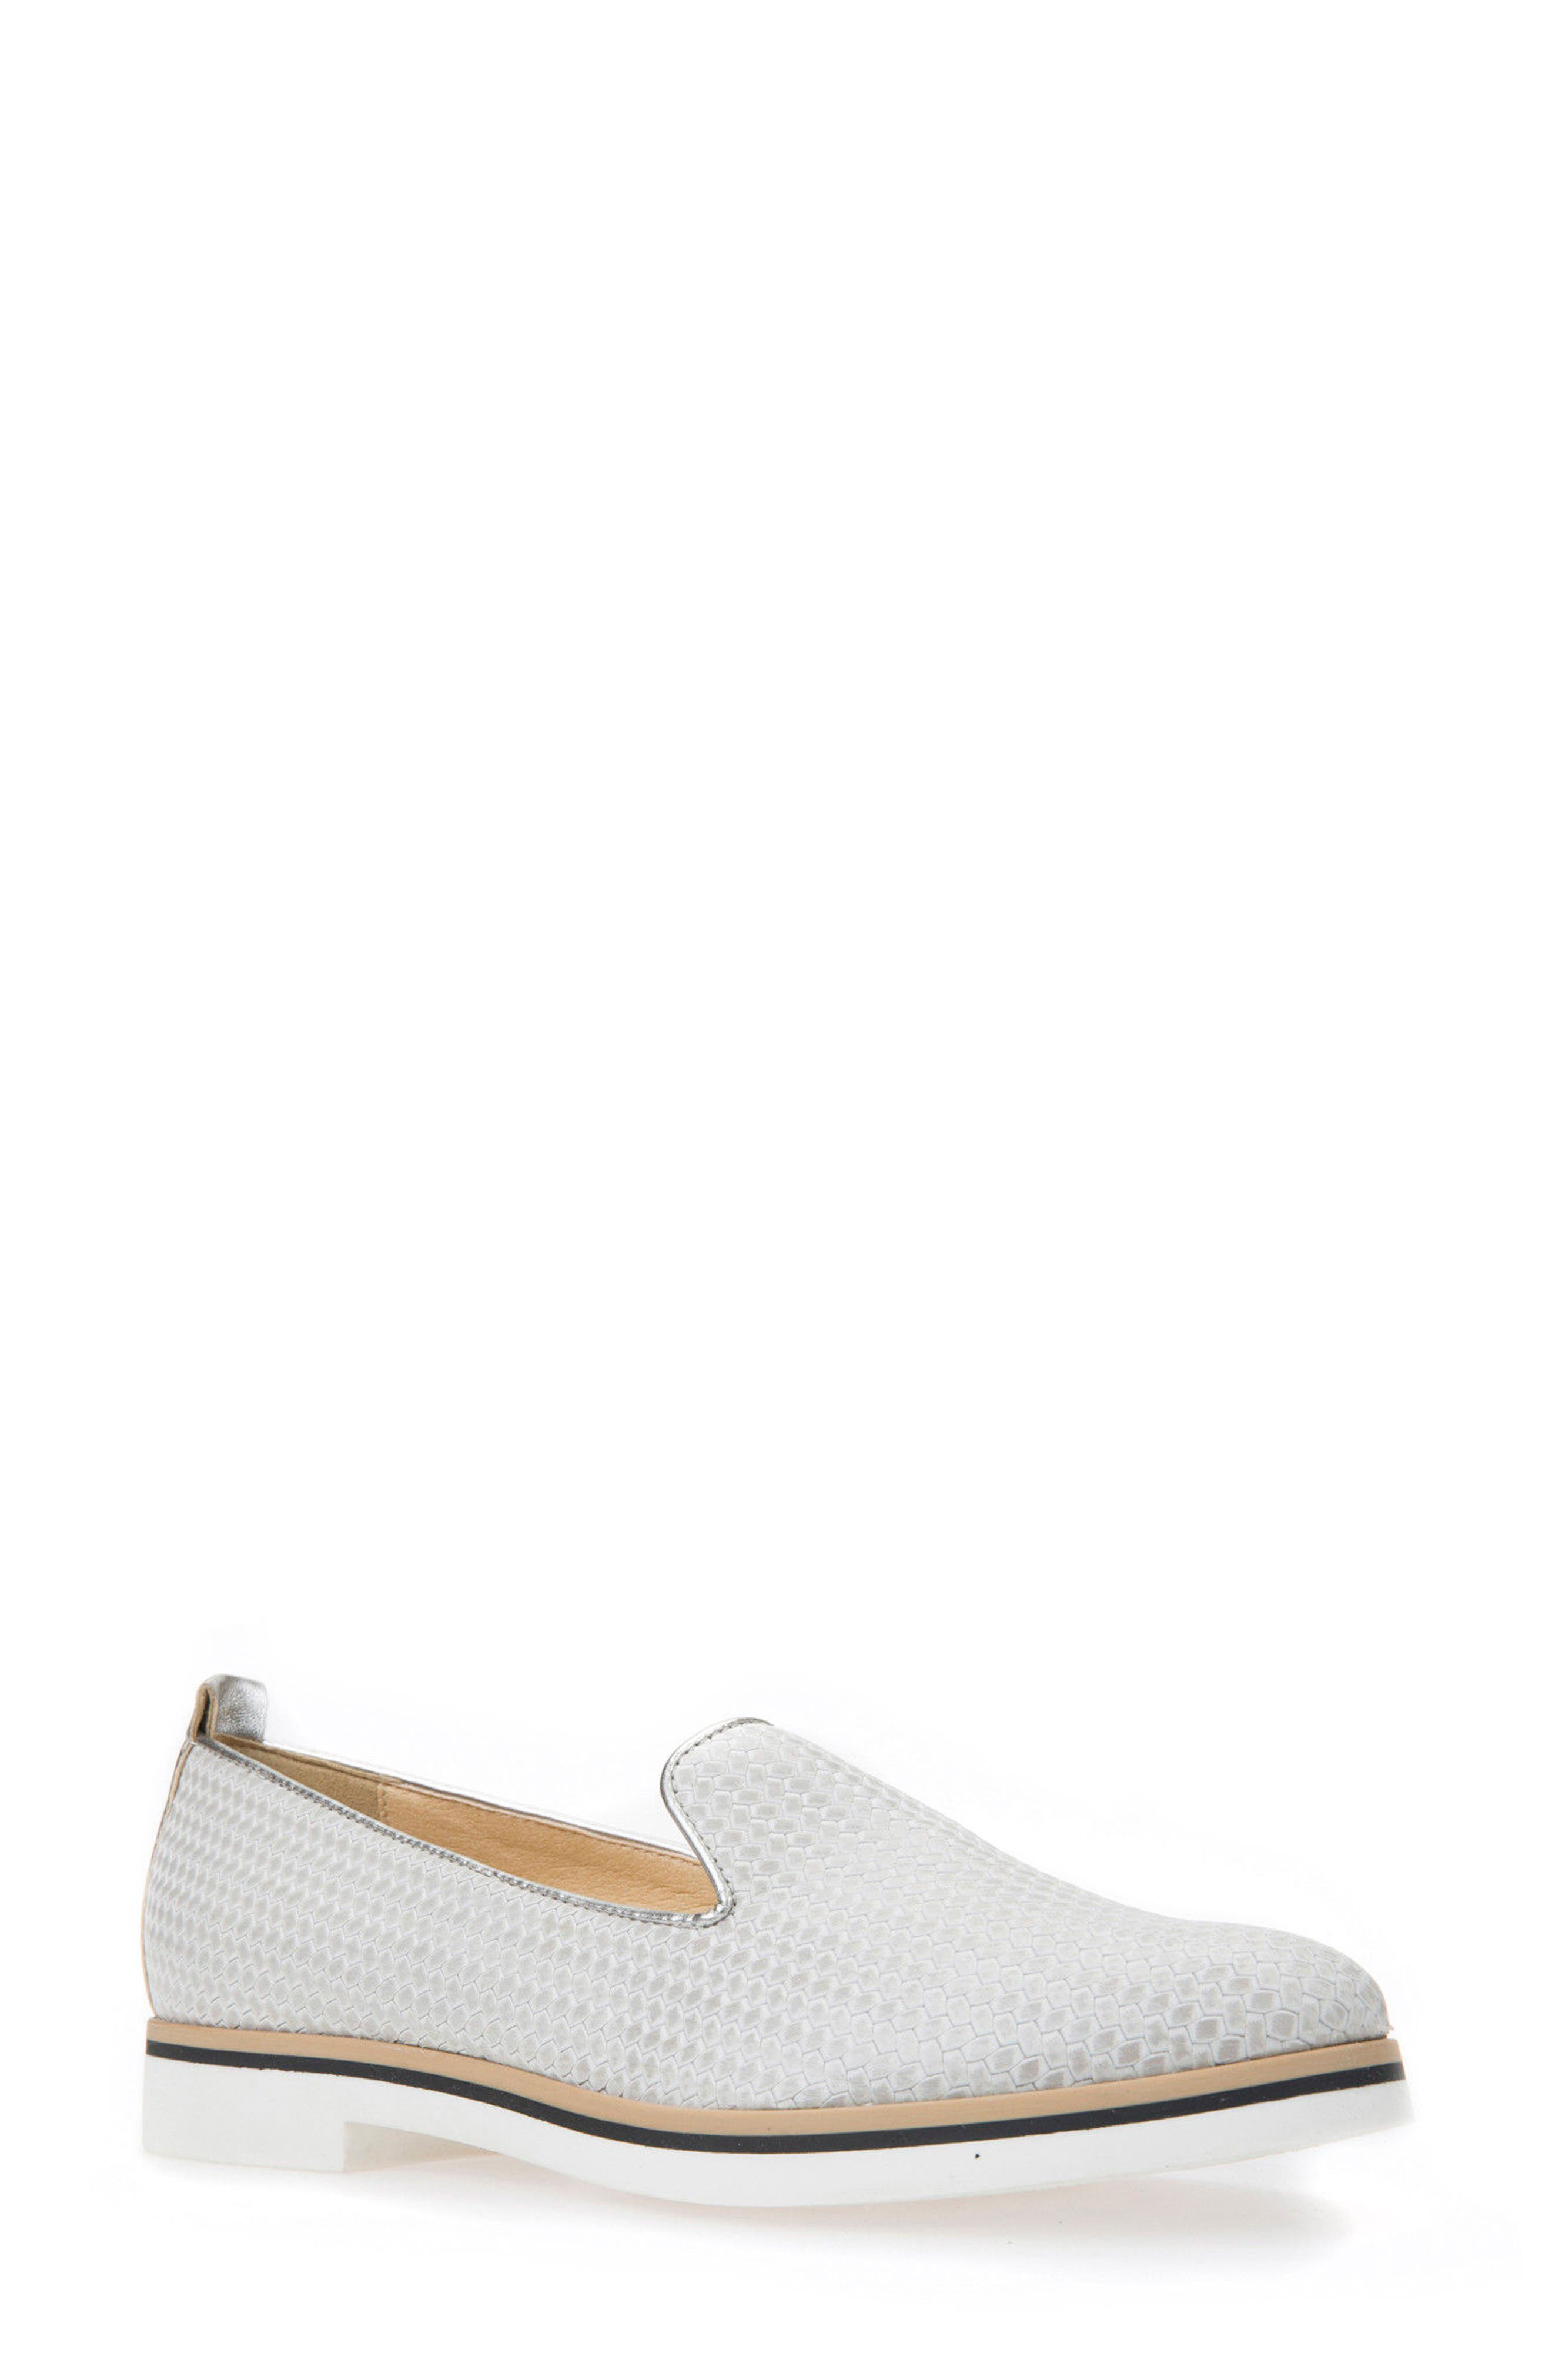 Janalee Woven Loafer,                             Main thumbnail 1, color,                             Light Grey Leather